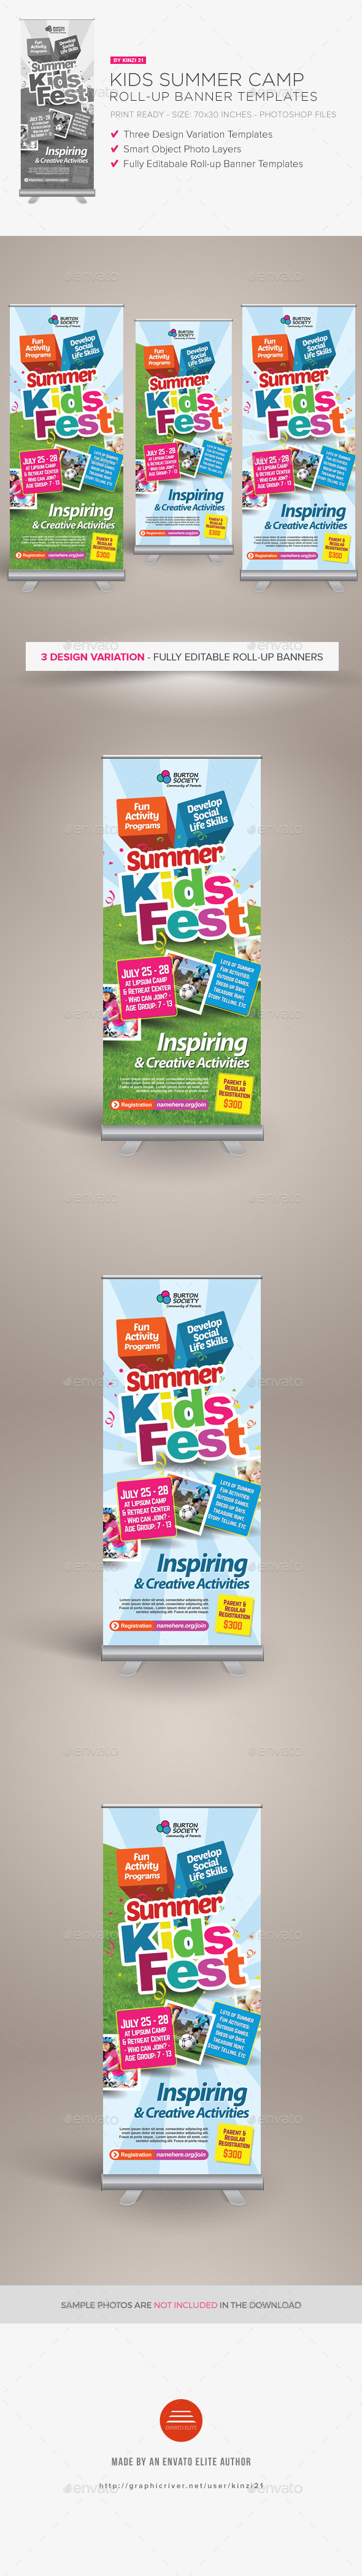 Kids Summer Camp Roll-up Banners